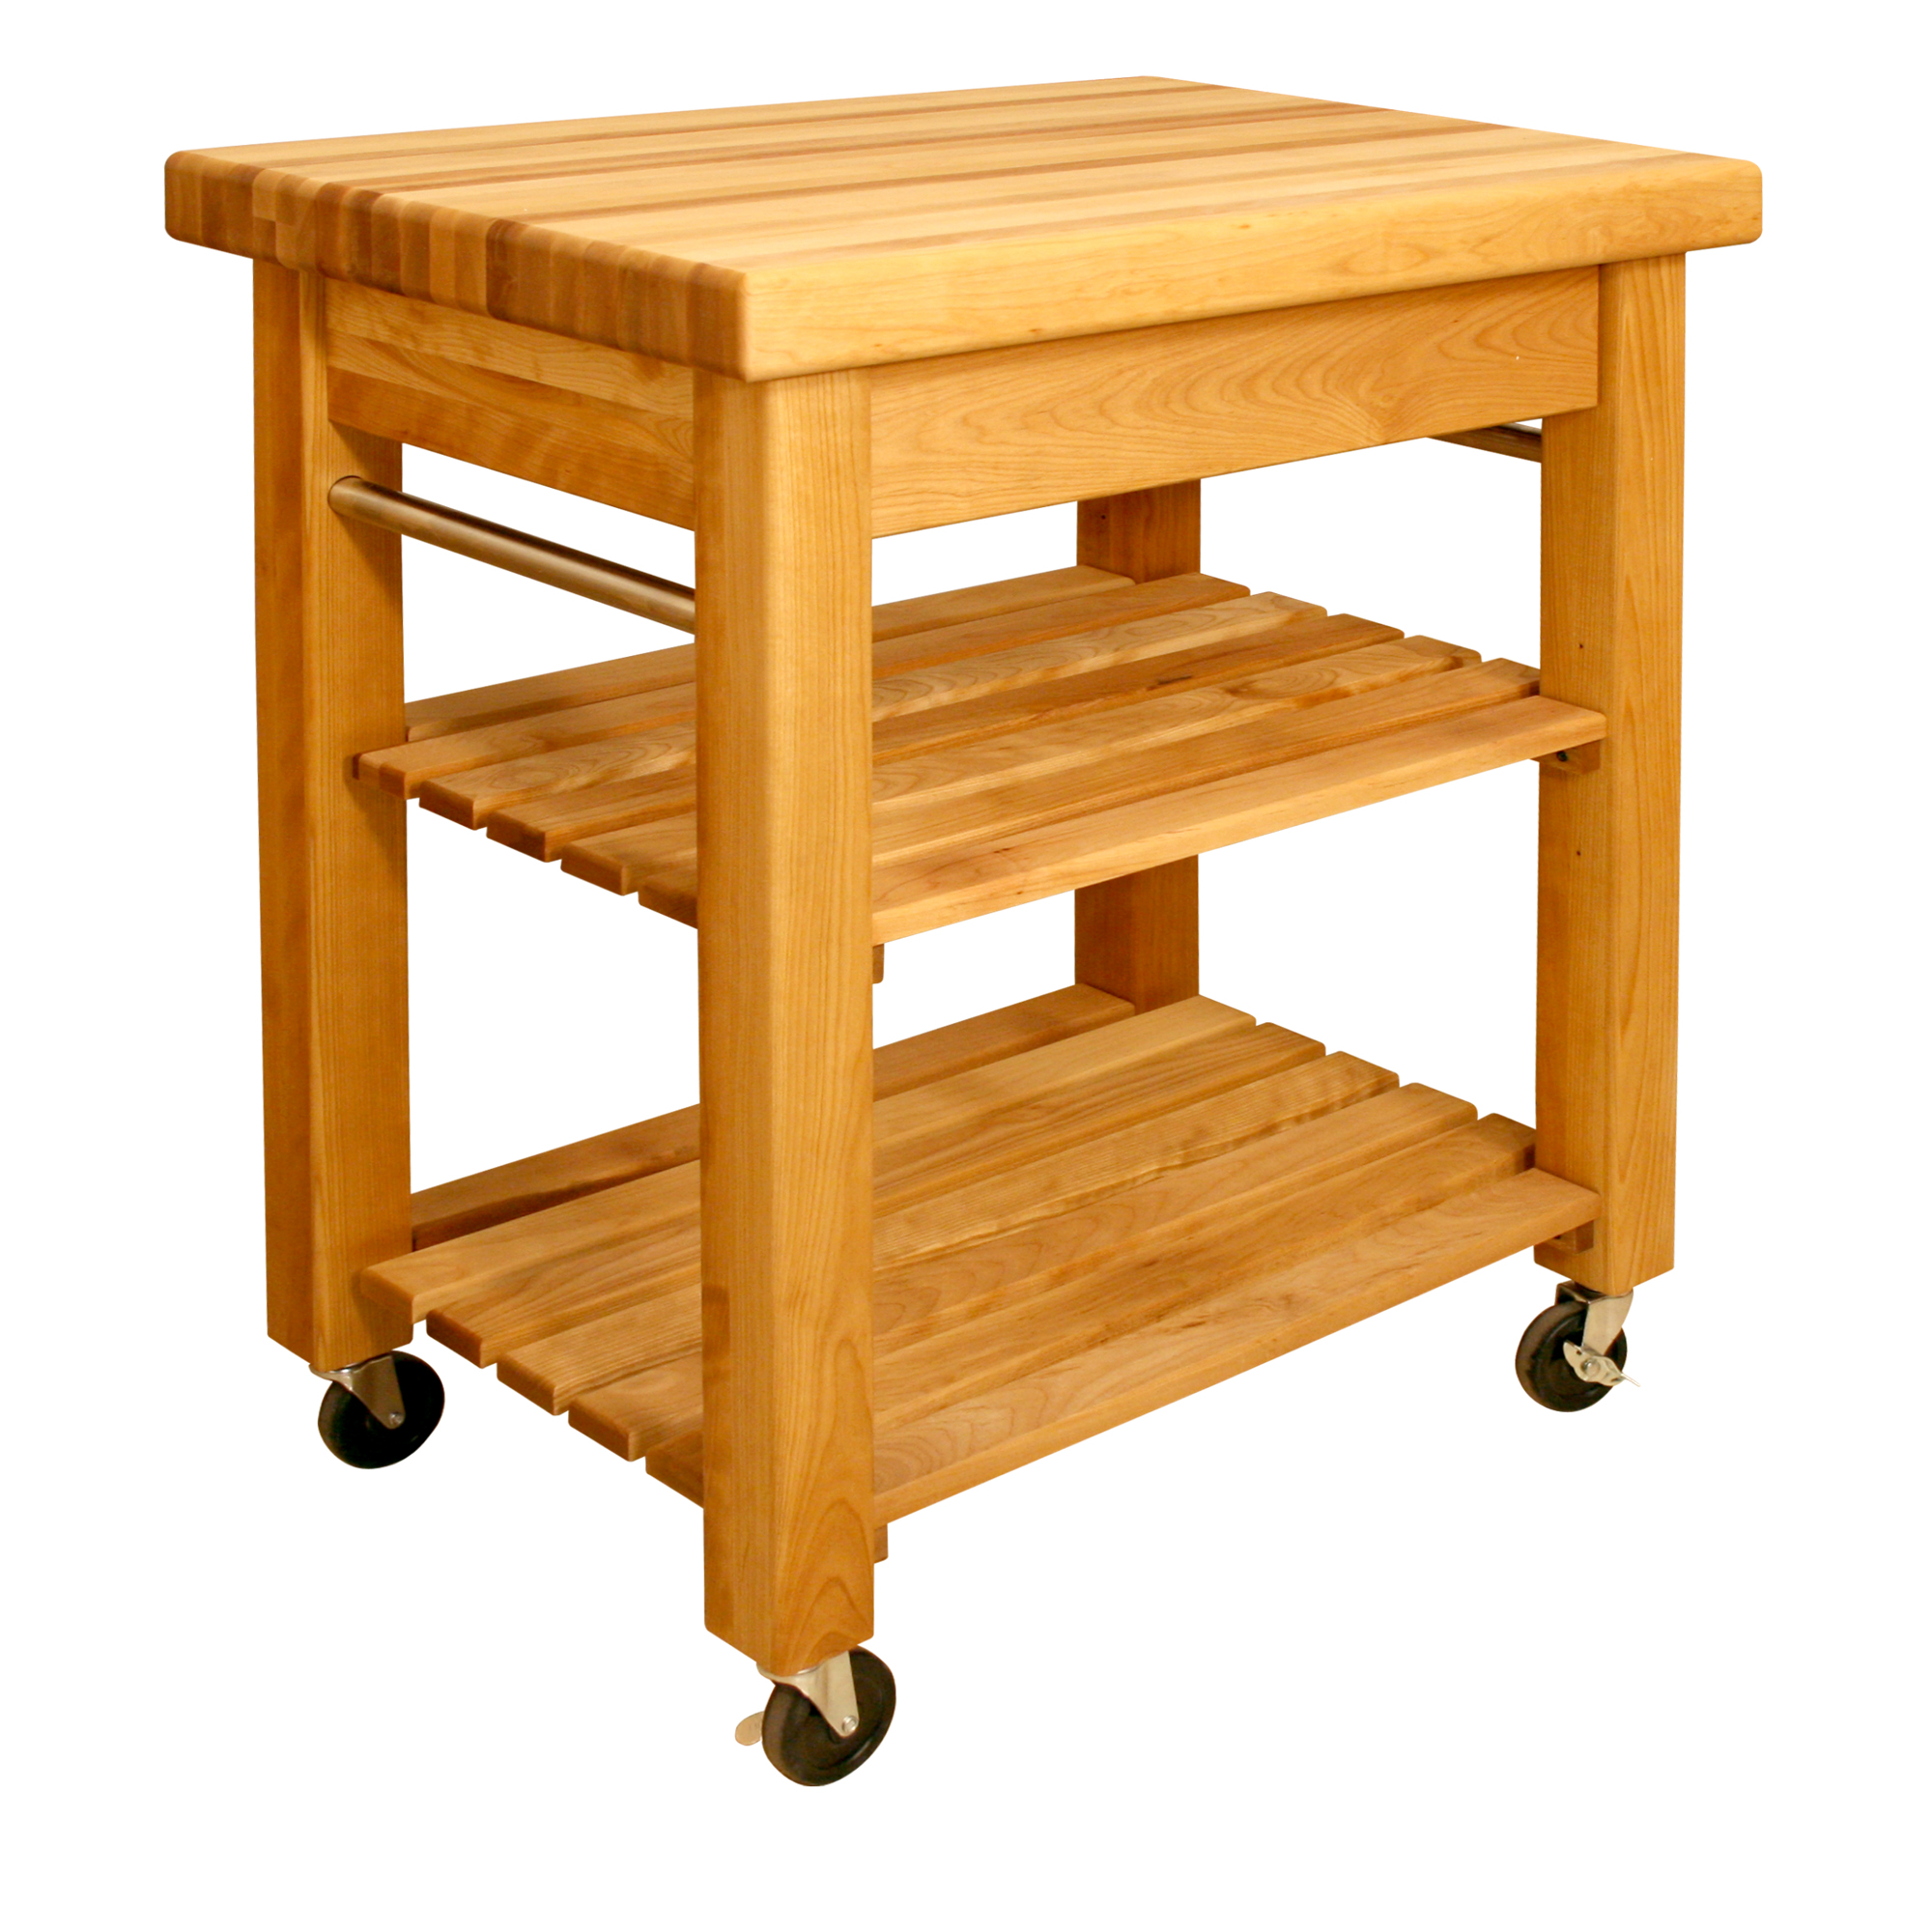 catskill large french country work center   36   x 24   x 2 5   top butcher block kitchen island   john boos islands  rh   butcherblockco com